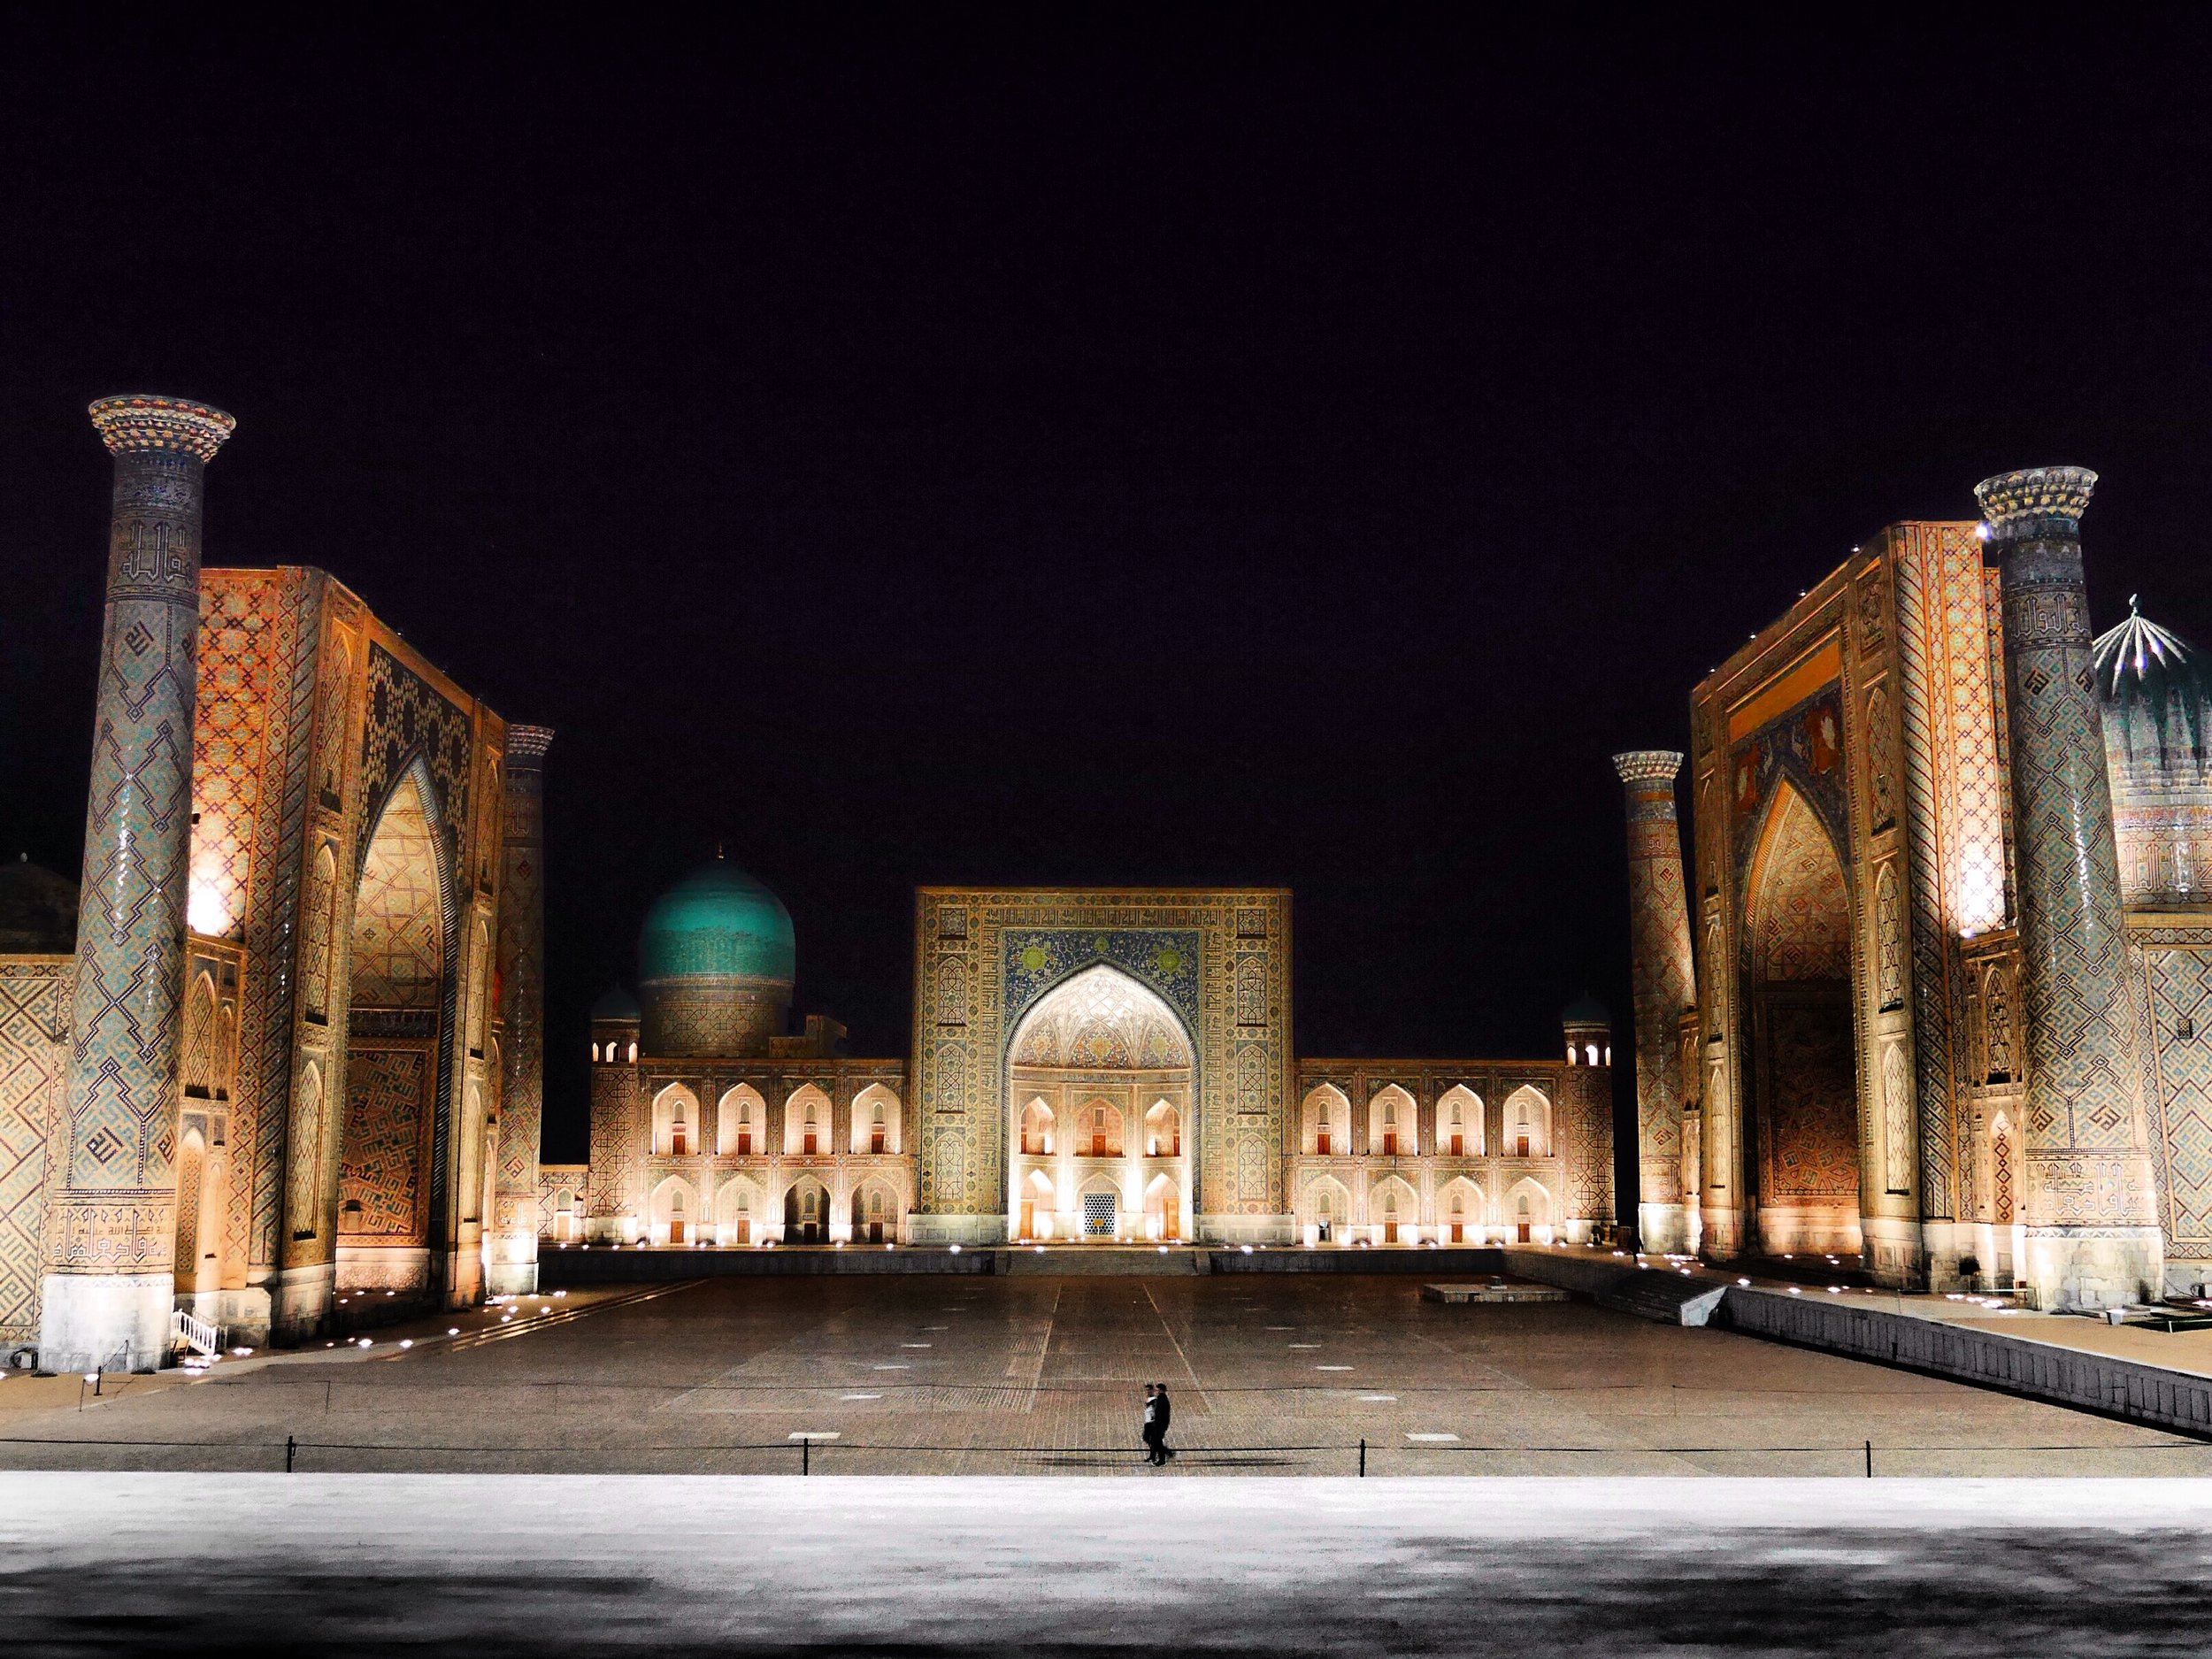 The Registan square in the heart of Samarkand.